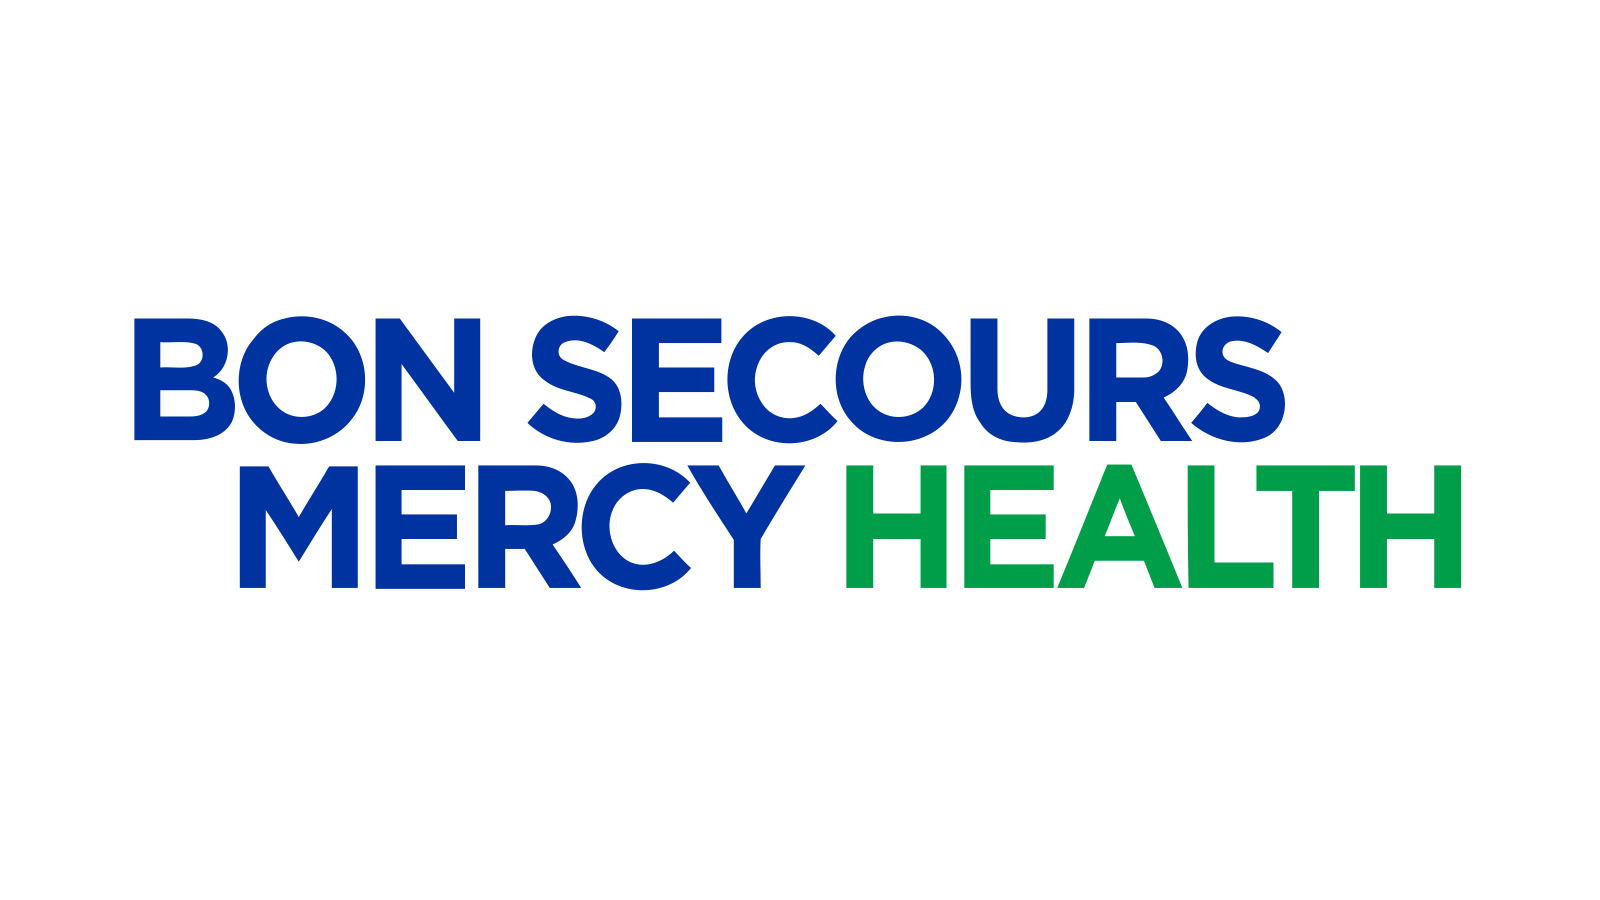 OpenMarkets Platform Secures O2 Concentrators for Bon Secours Mercy Health to Be Shipped out to Peru Amid COVID-19 Crisis